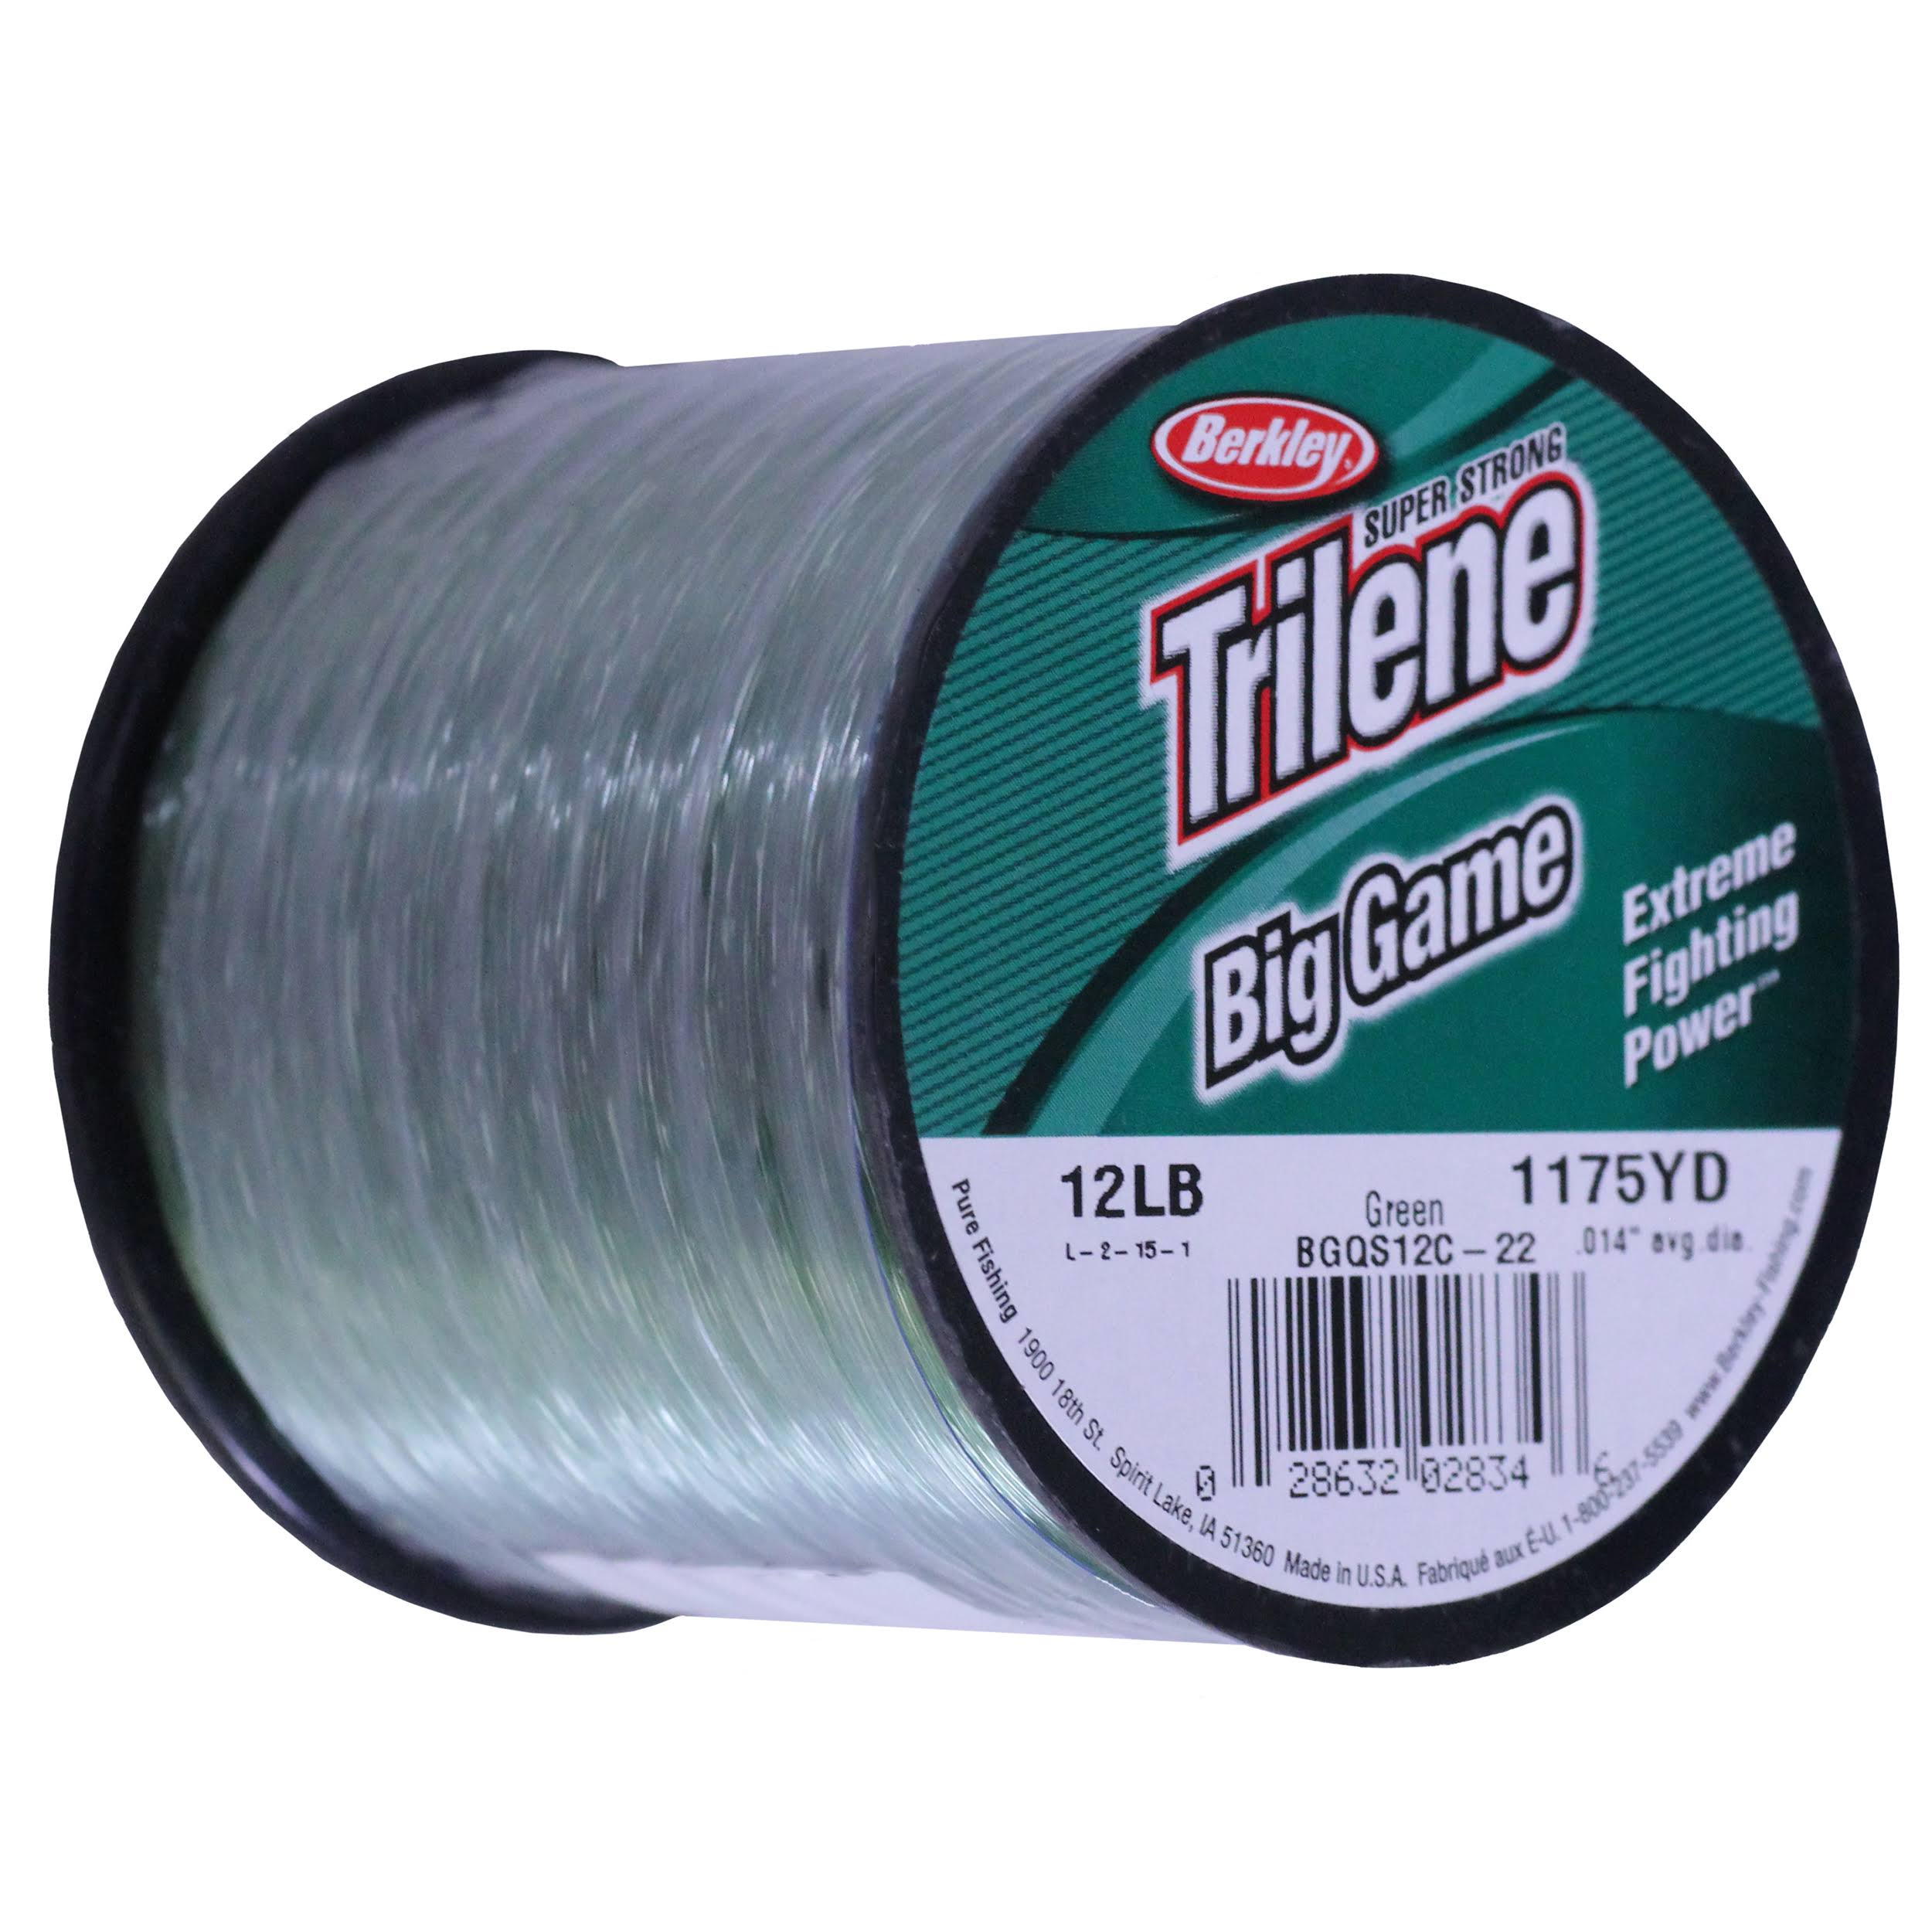 Berkley Trilene Big Game Mono Fishing Line - Green, 12lbs, 1175yds